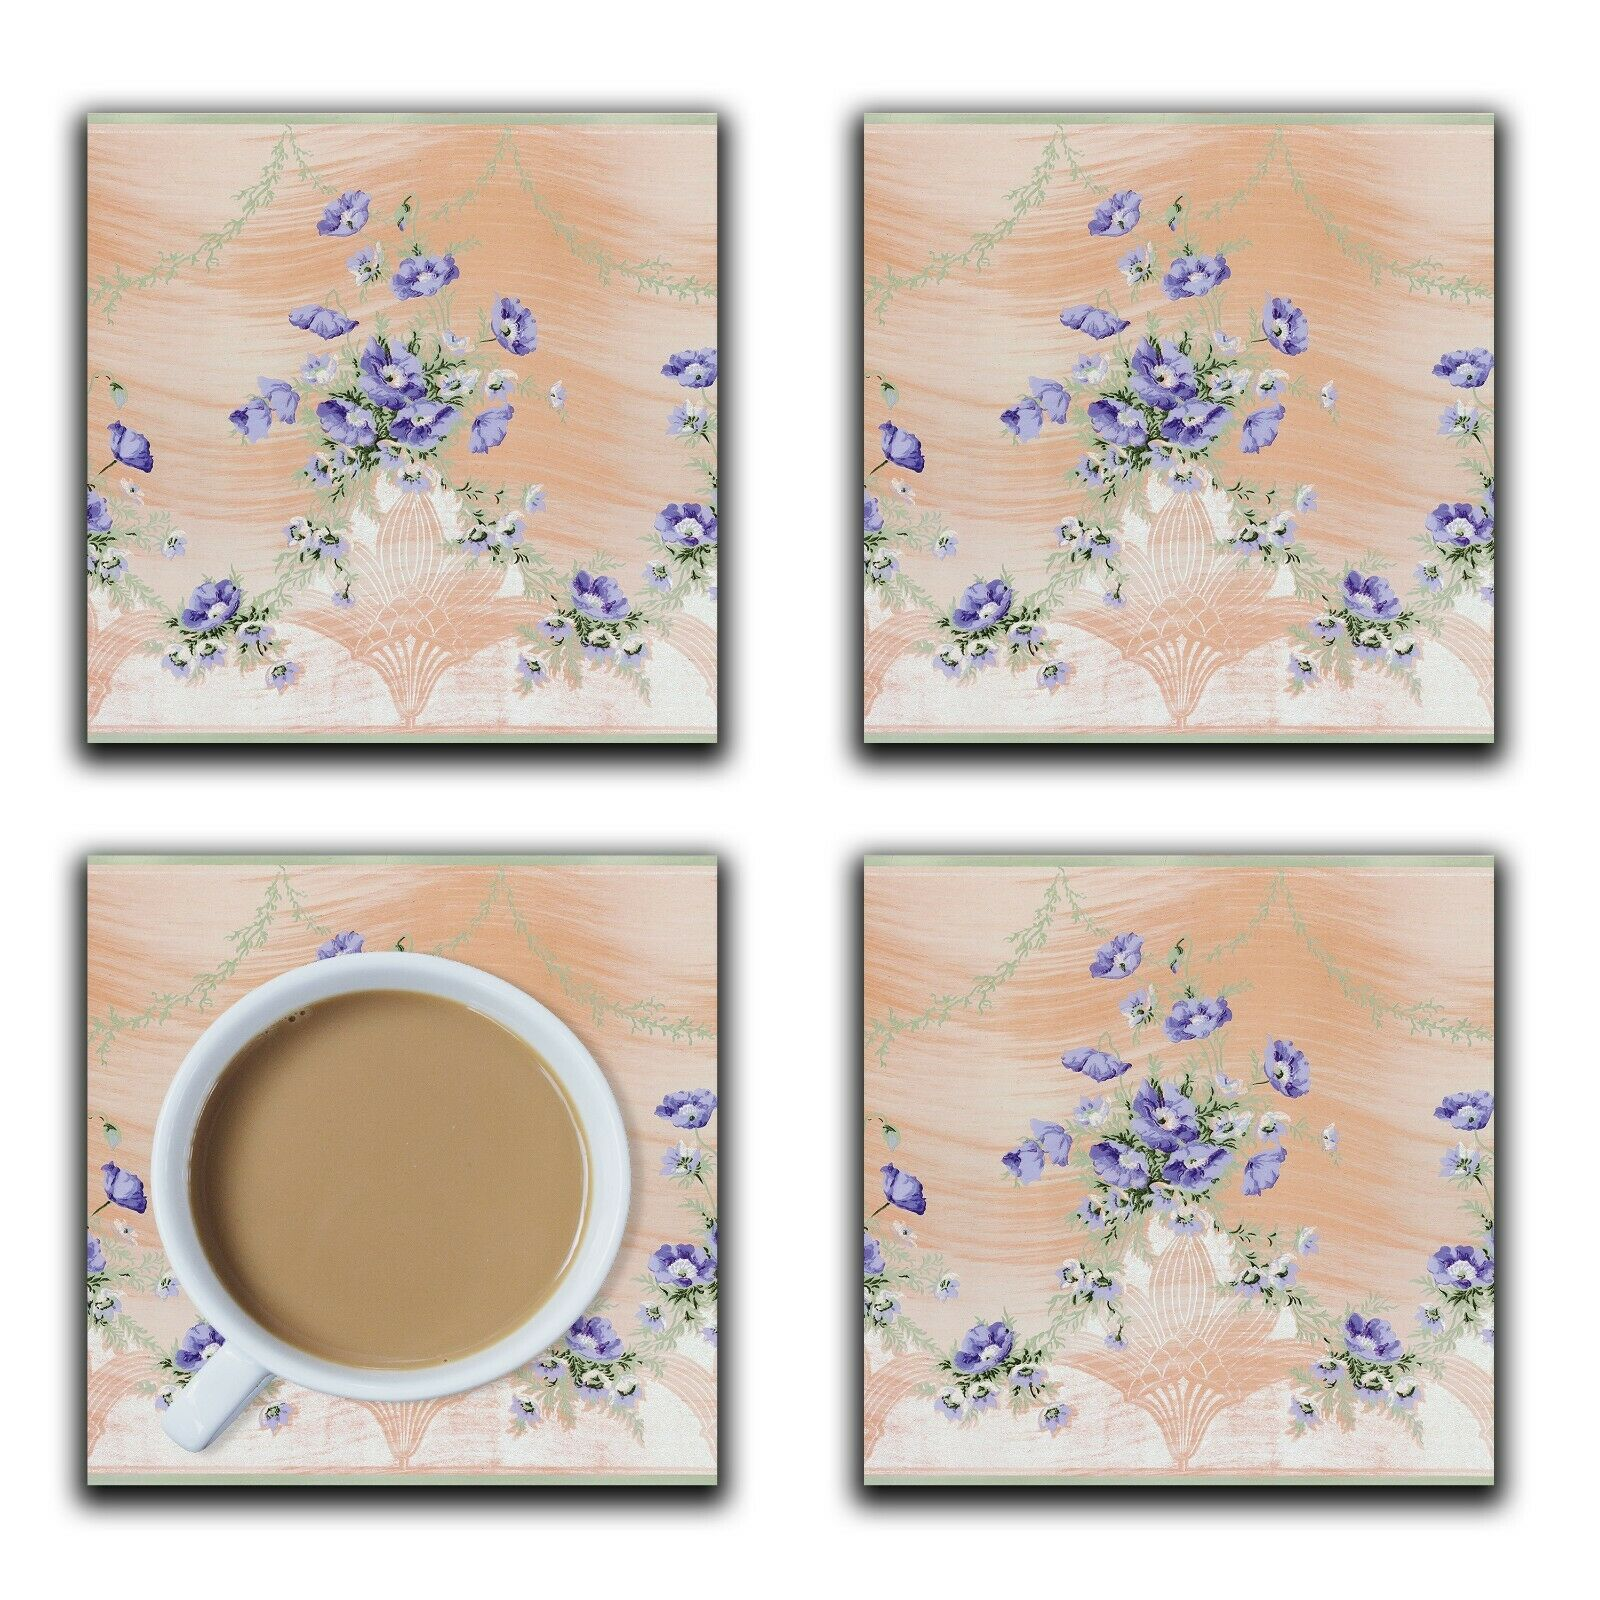 Embossi Printed American 1890 Terracotta and Violets, wood or ceramic tile, set of 4